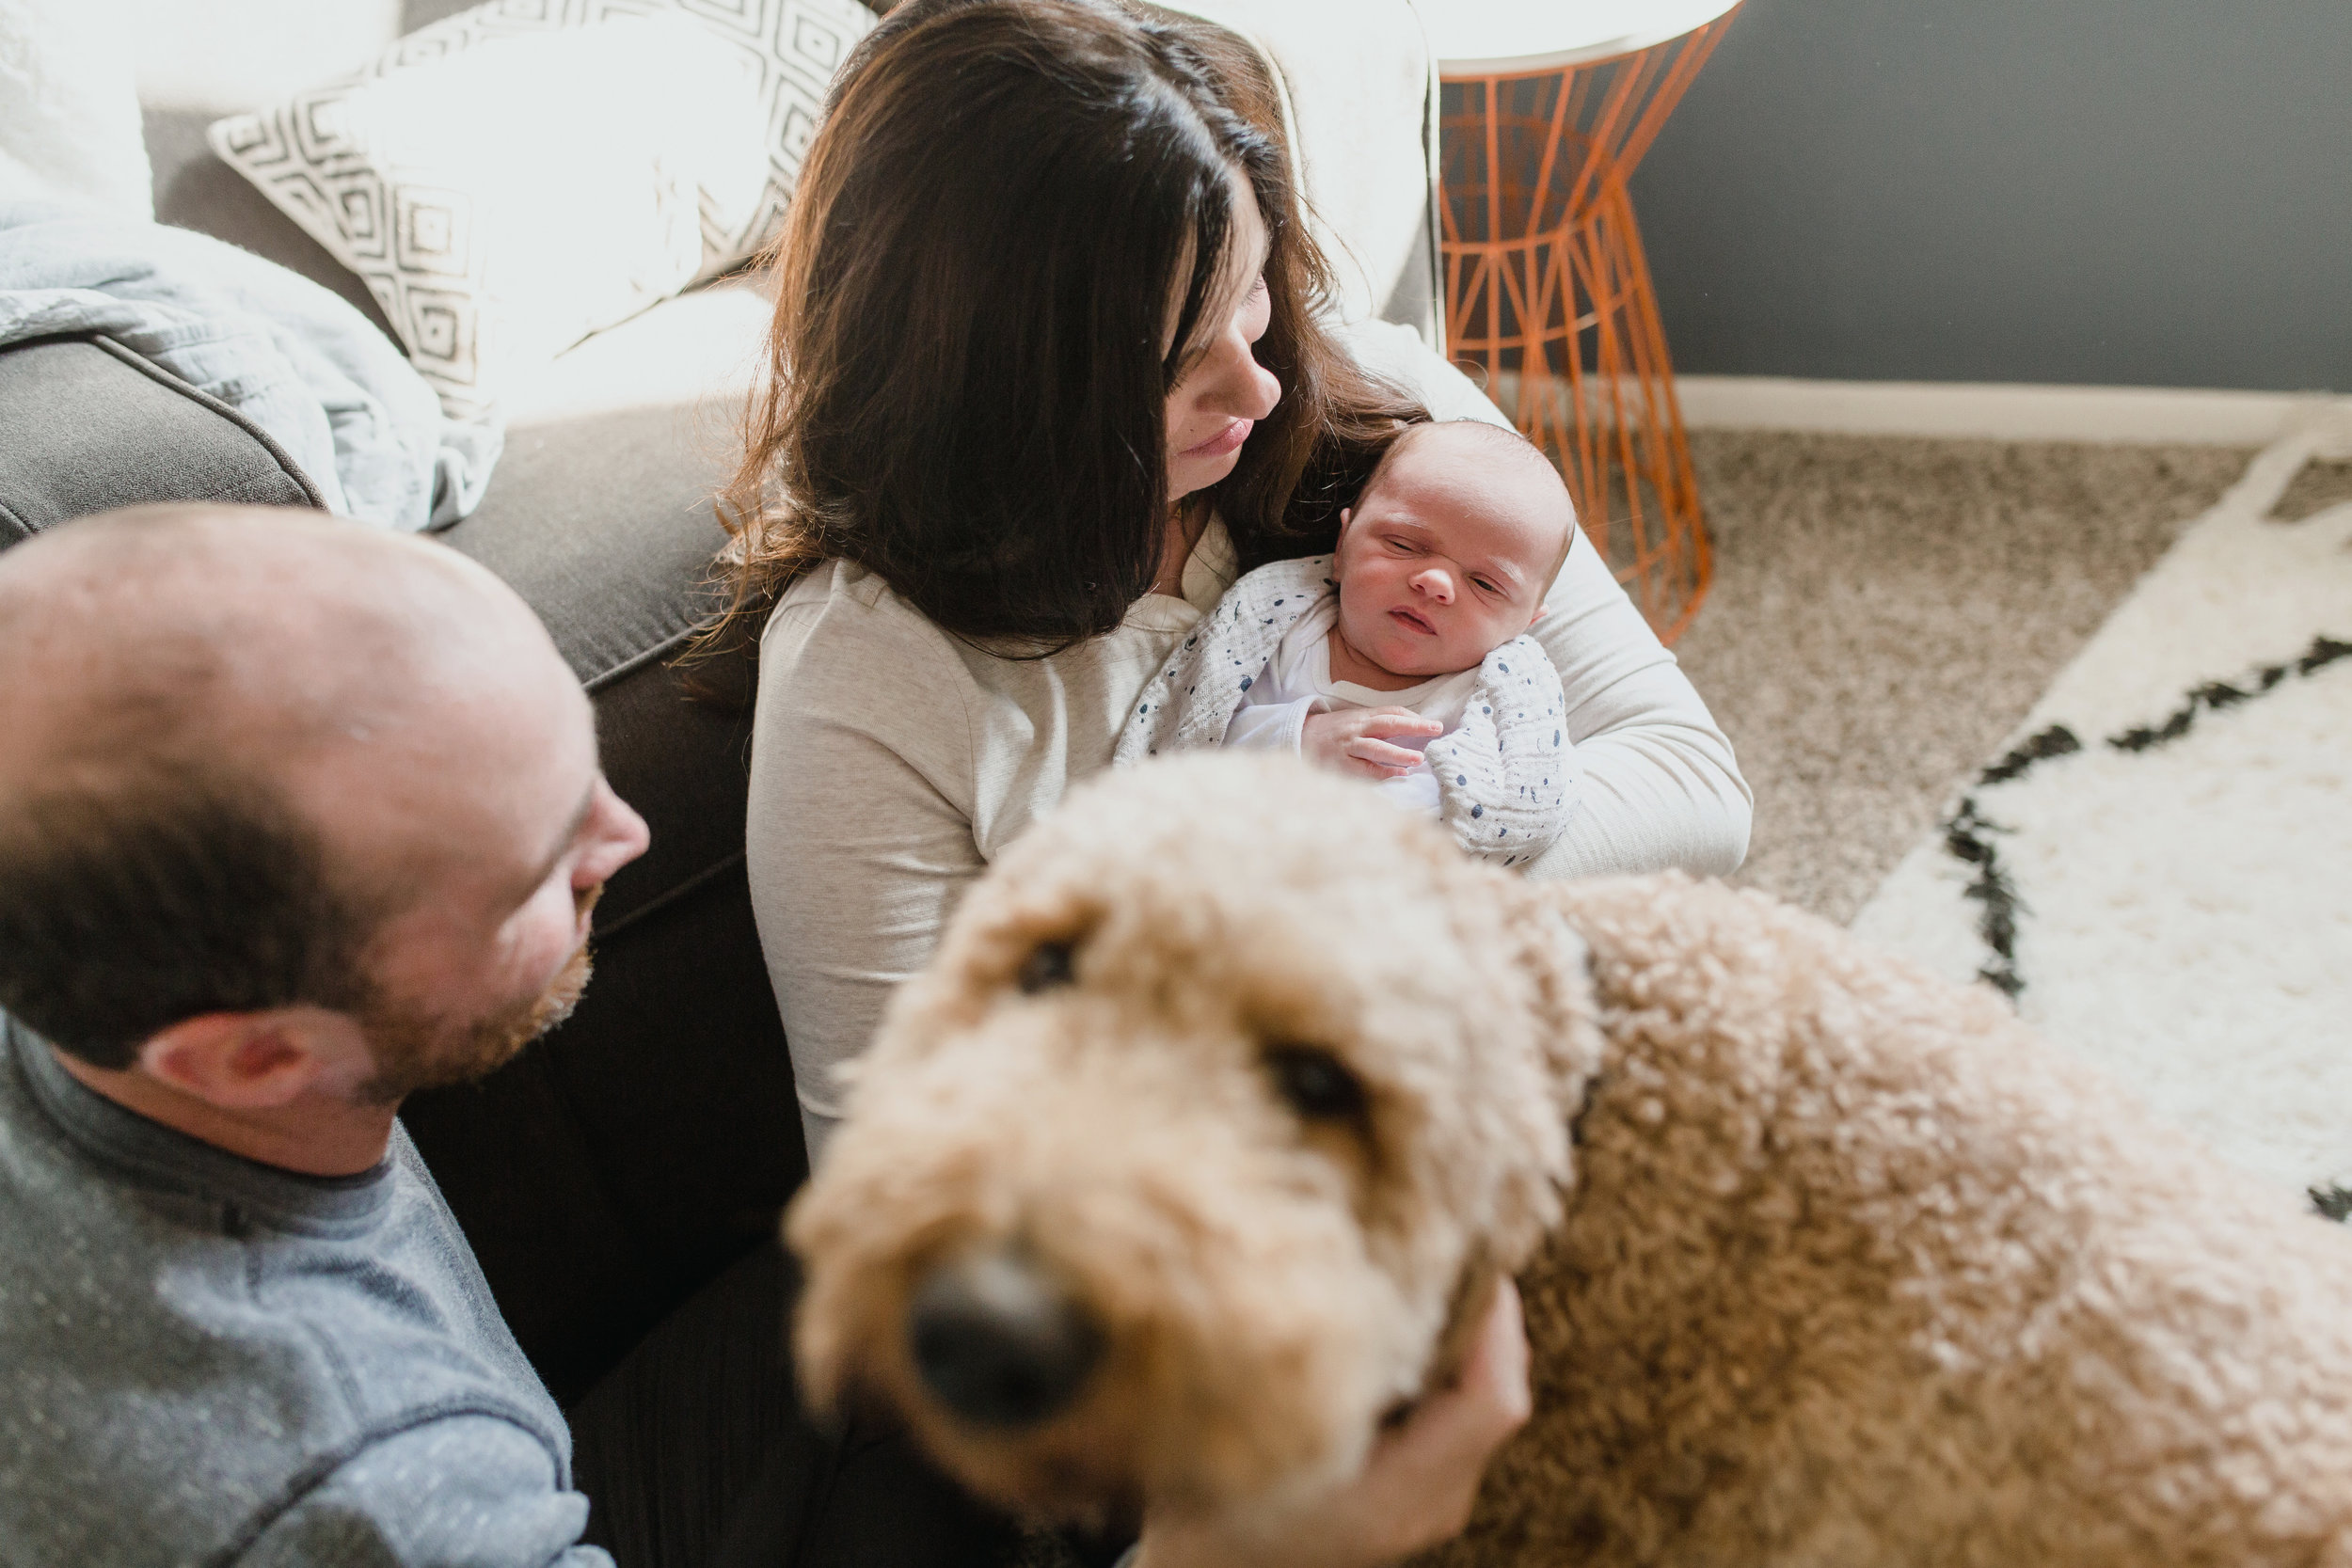 Fur_Babies_Lifestyle_Photography_Family_Newborn_Pets.JPG